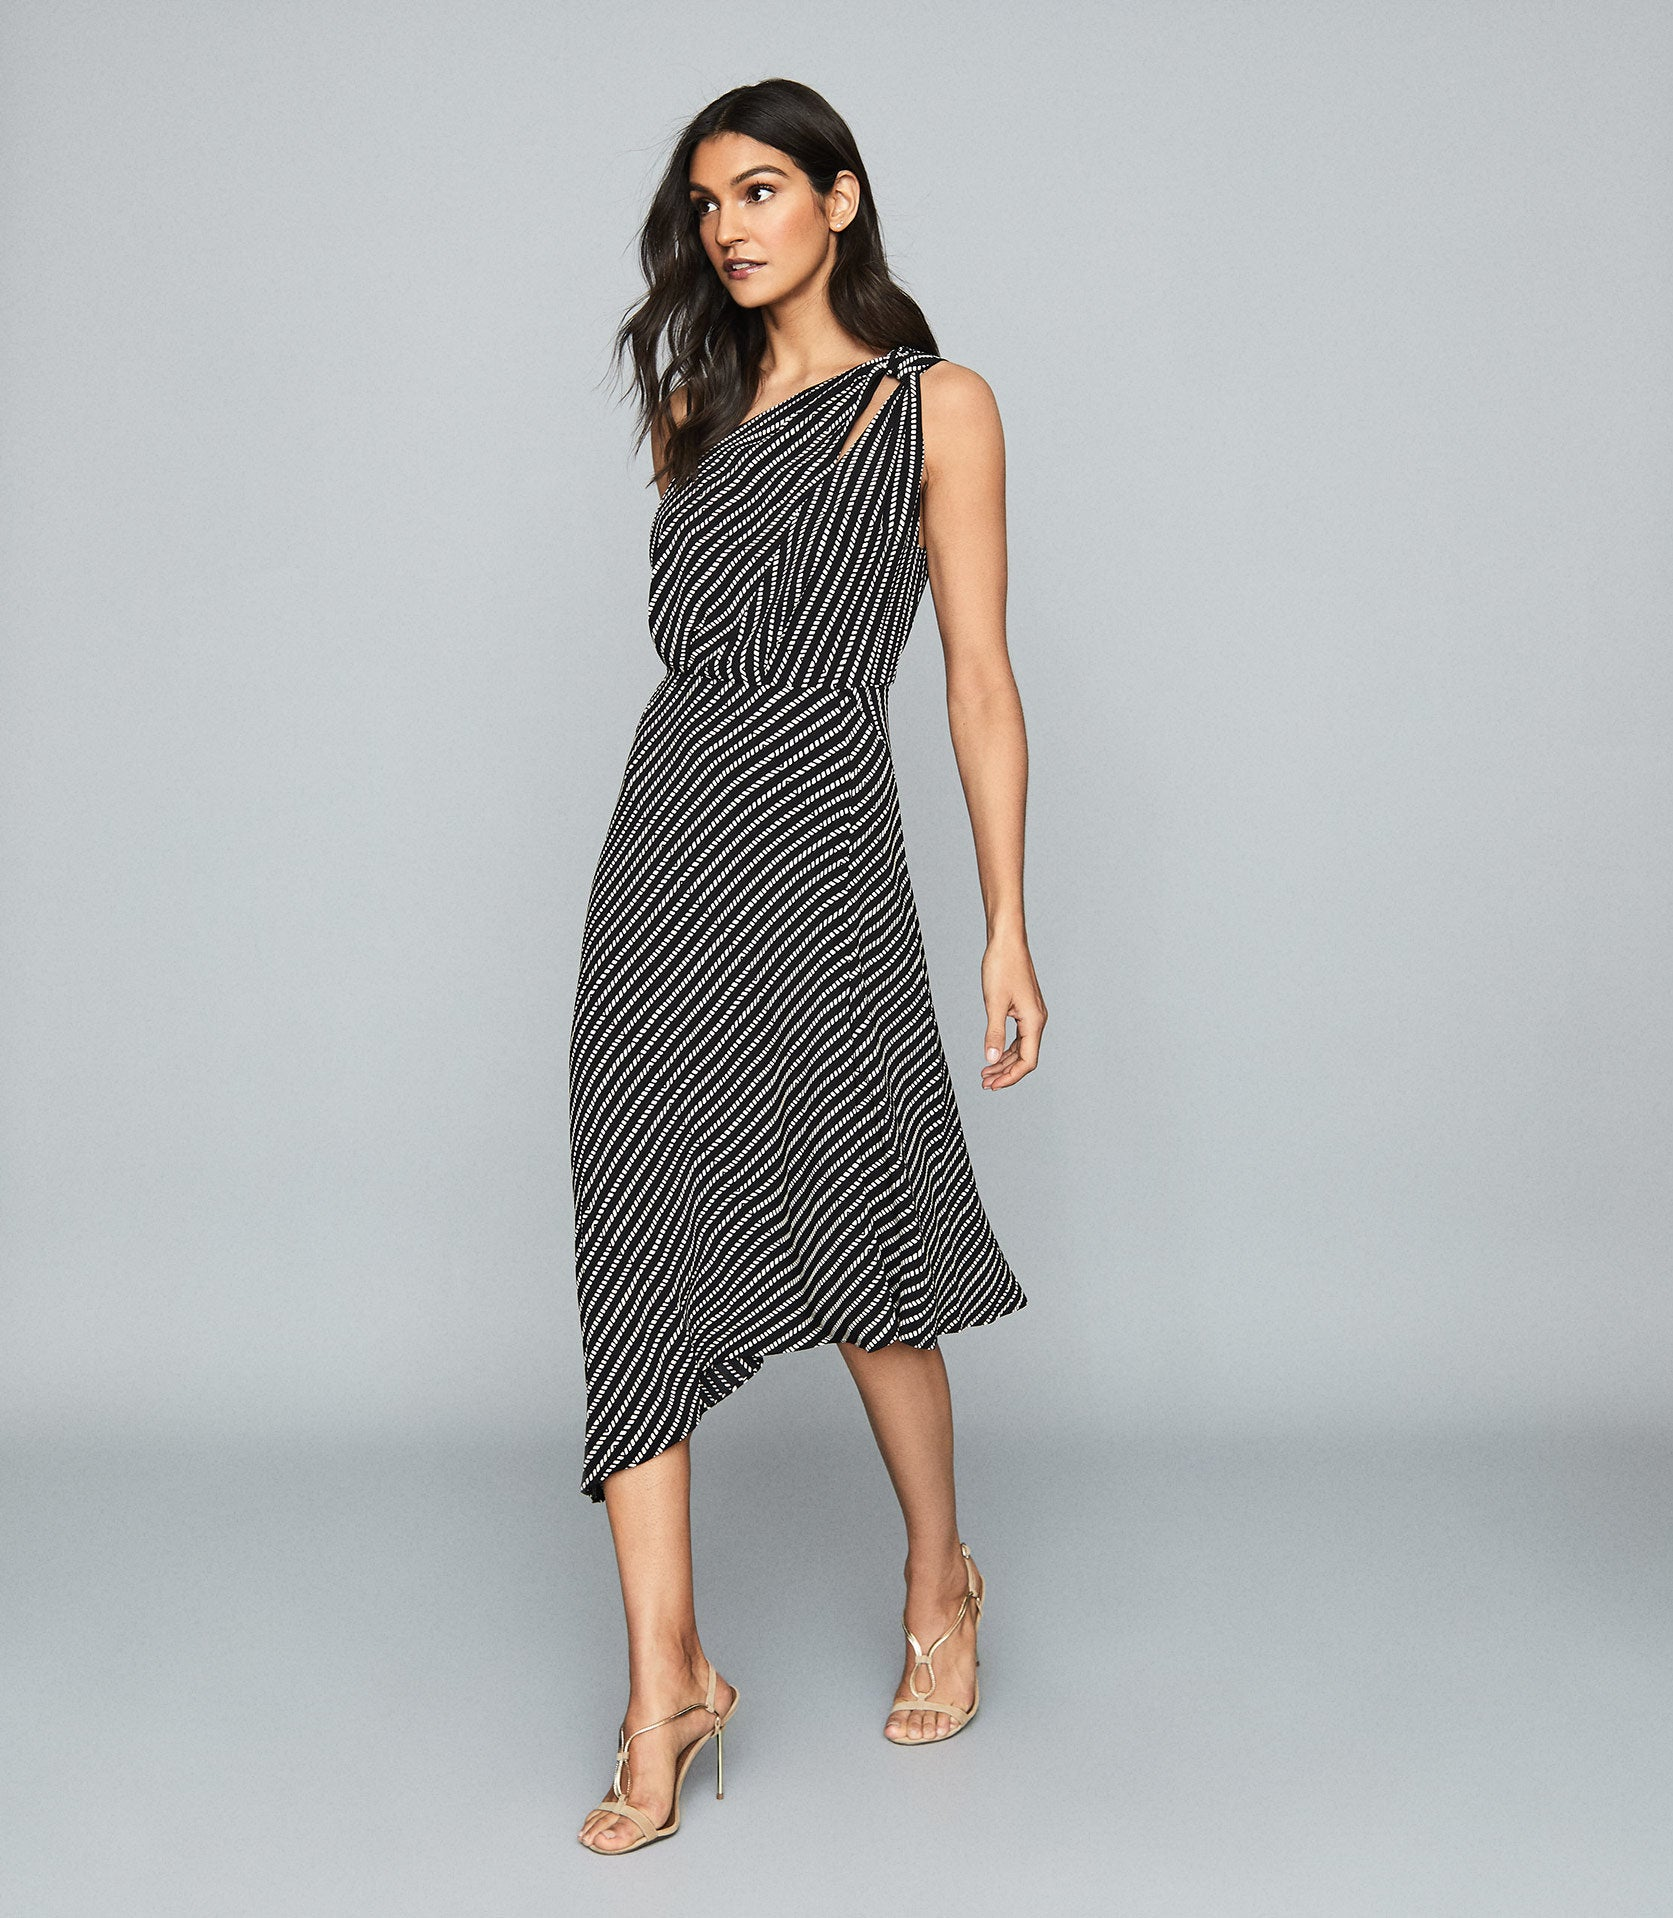 reiss dresses